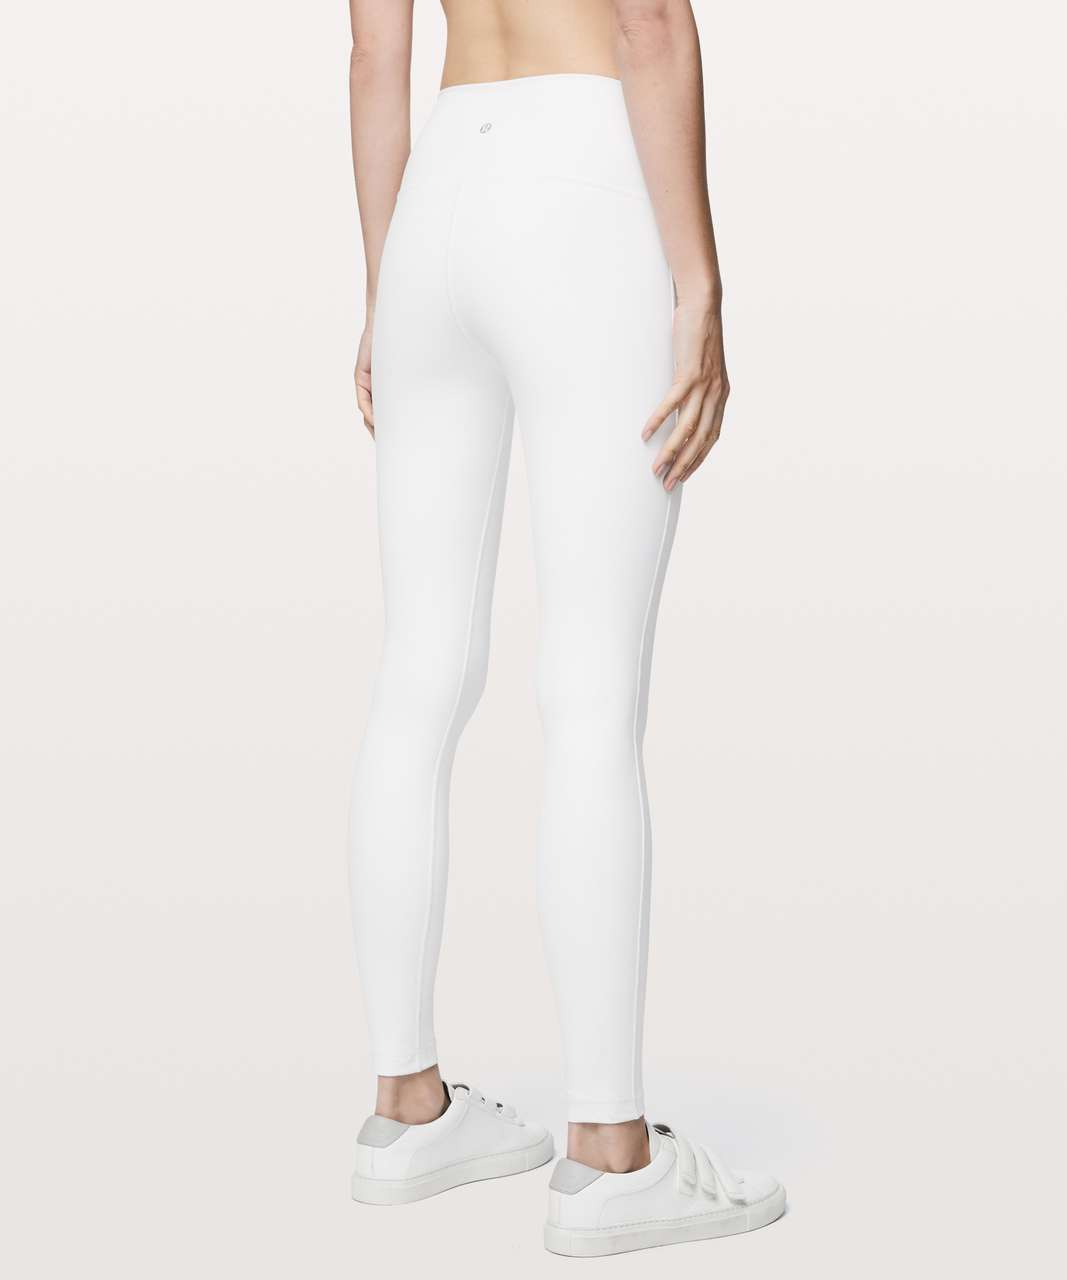 "Lululemon Wunder Under High-Rise Tight *Full-On Luxtreme 28"" - White"